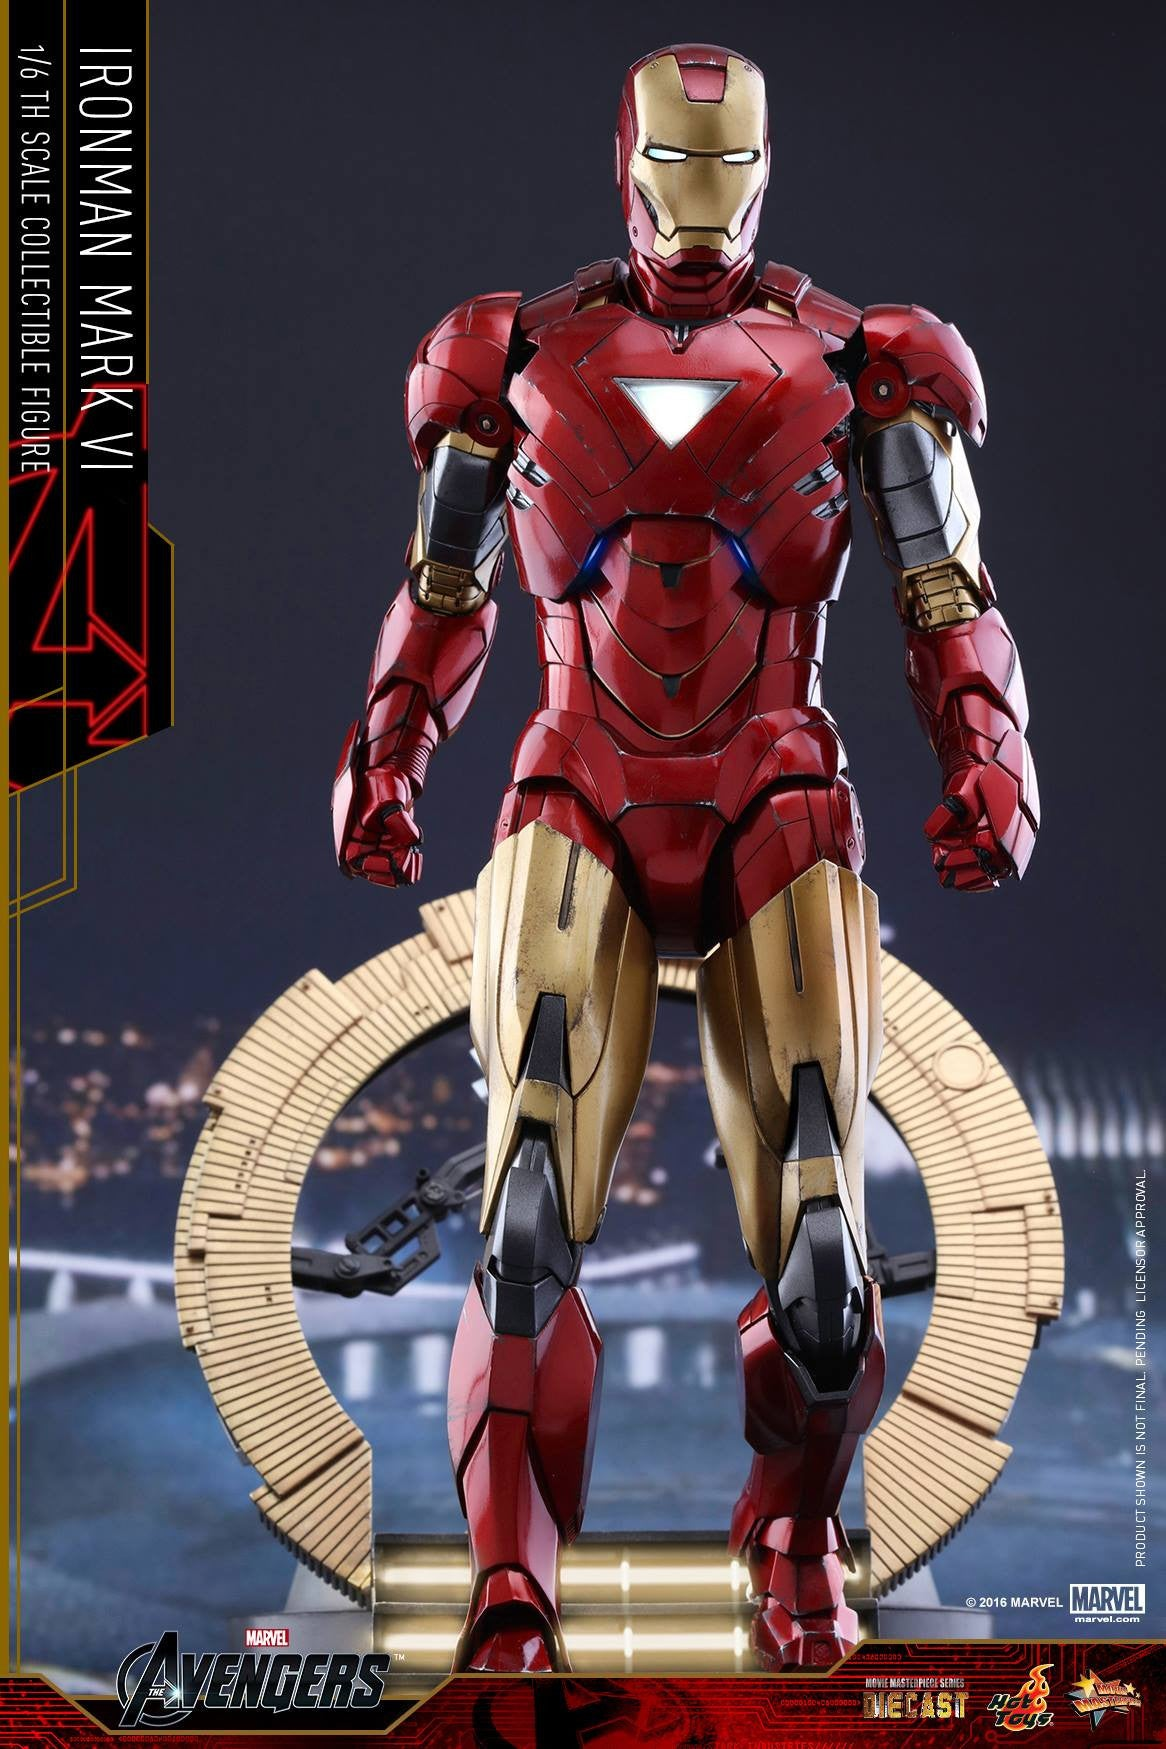 Hot Toys - MMS378D17 - The Avengers - Iron Man Mark VI (DIECAST) (Normal Edition) - Marvelous Toys - 2